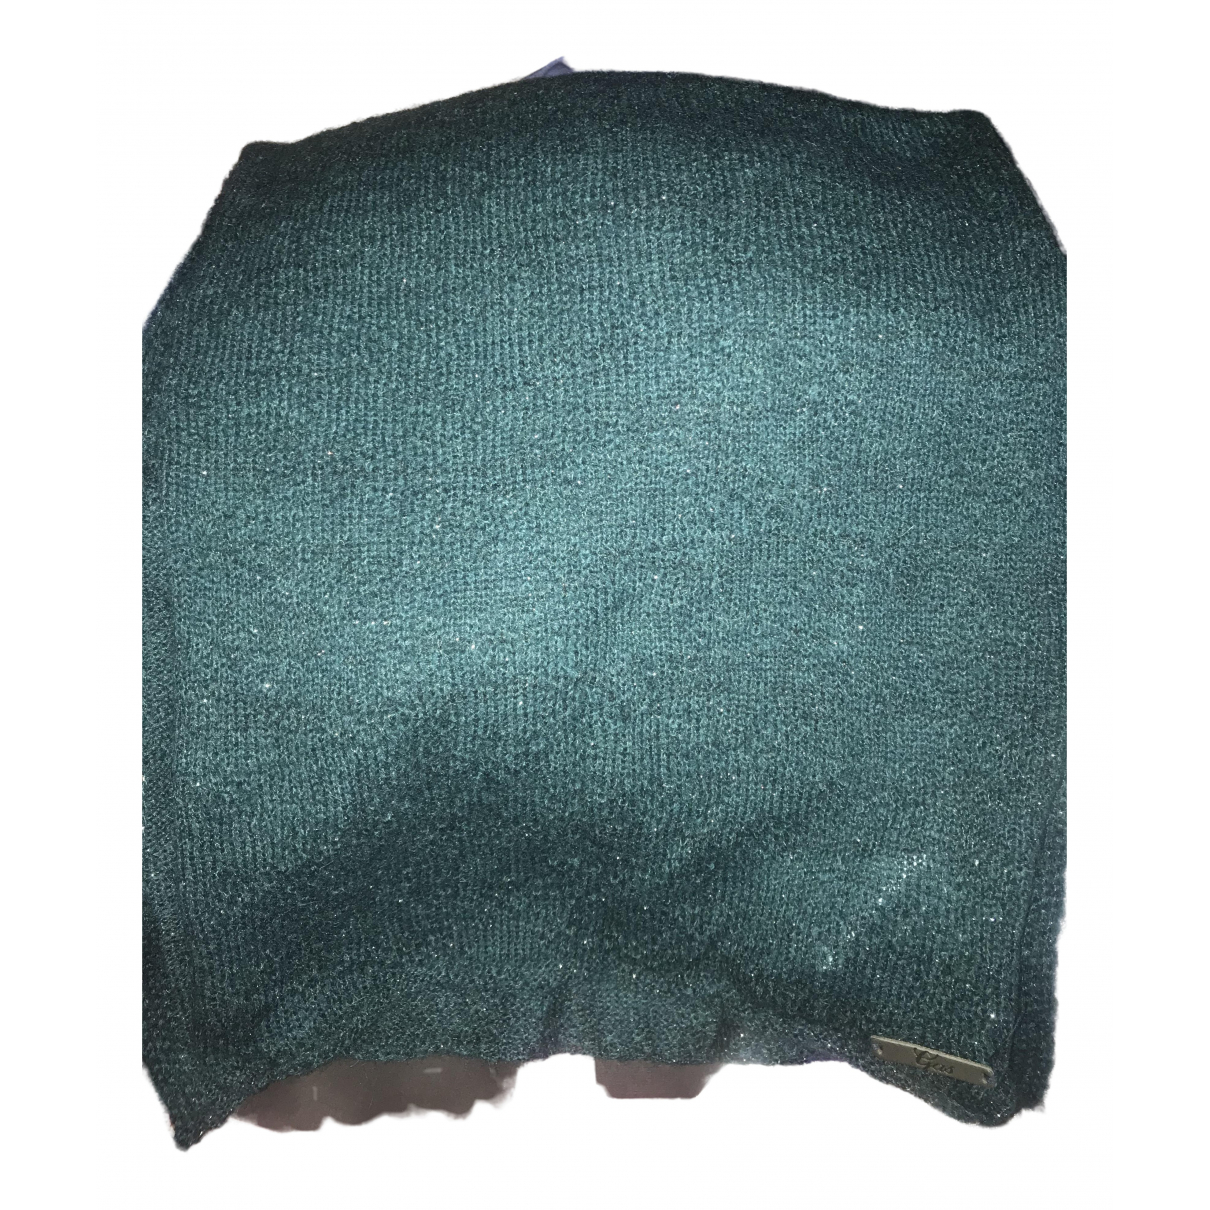 Gas \N Green Knitwear for Women 000 0-5